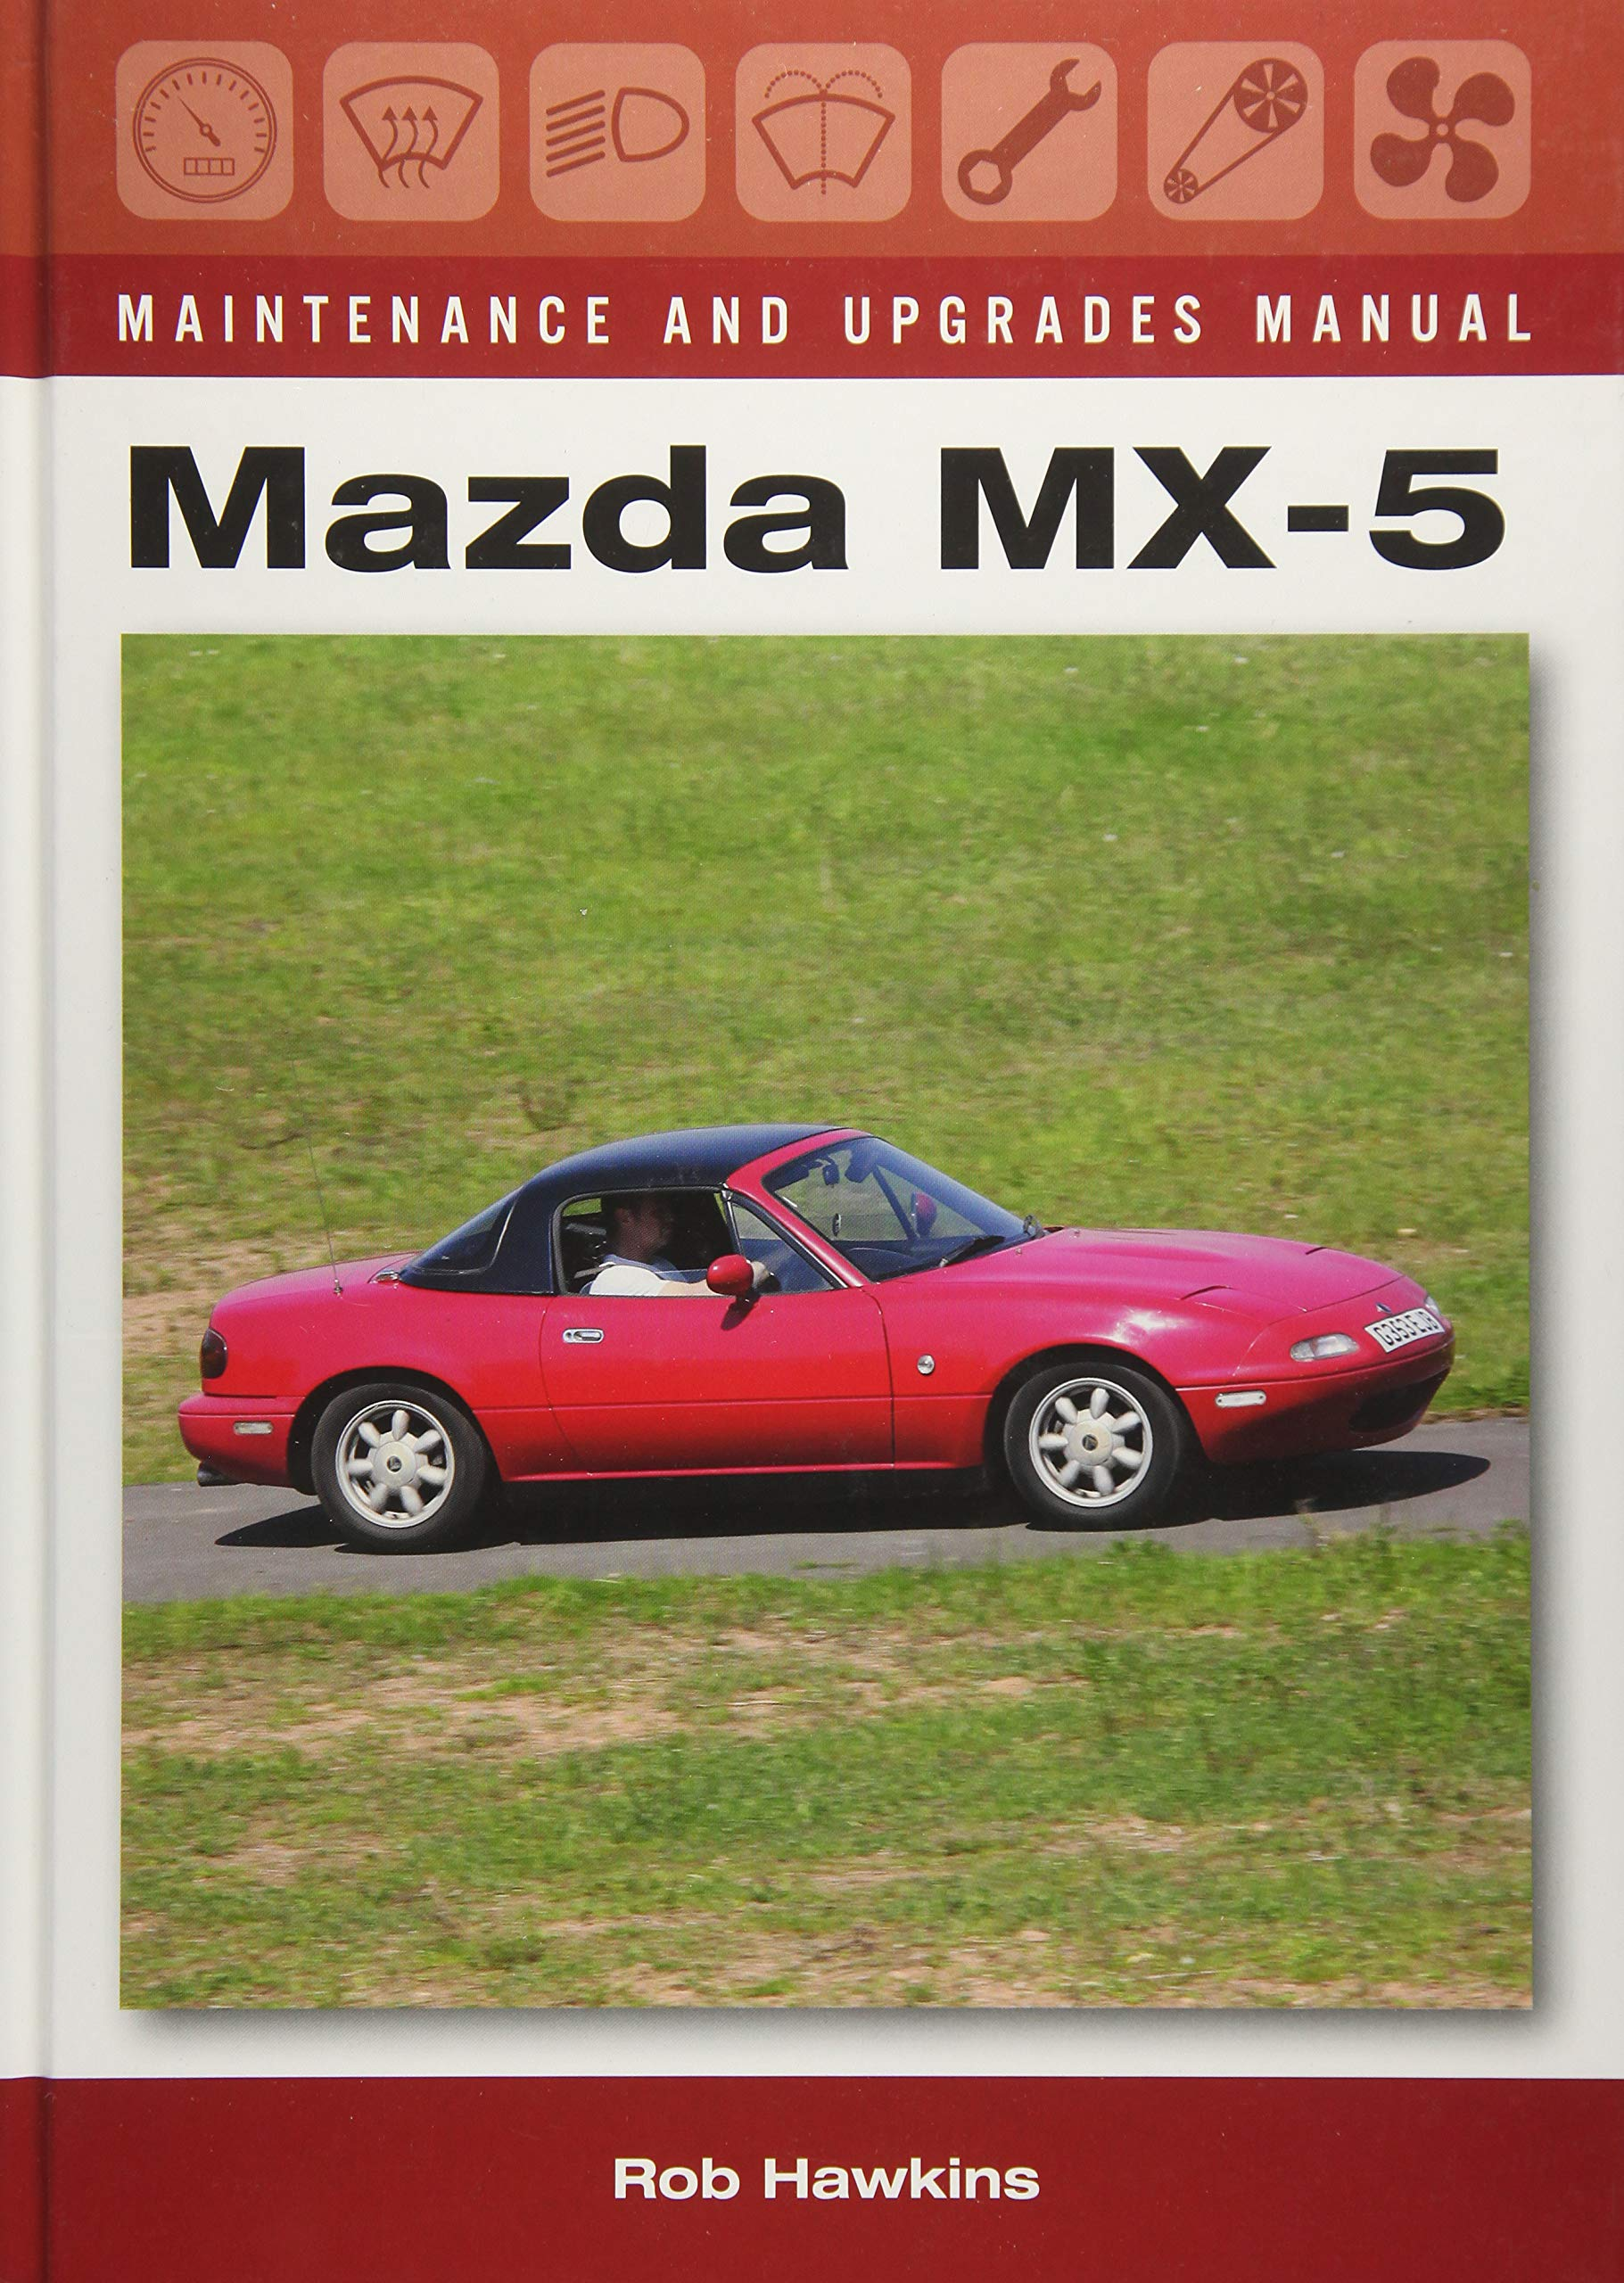 Mazda MX-5 Maintenance and Upgrades Manual: Amazon.co.uk: Rob Hawkins:  9781785002823: Books